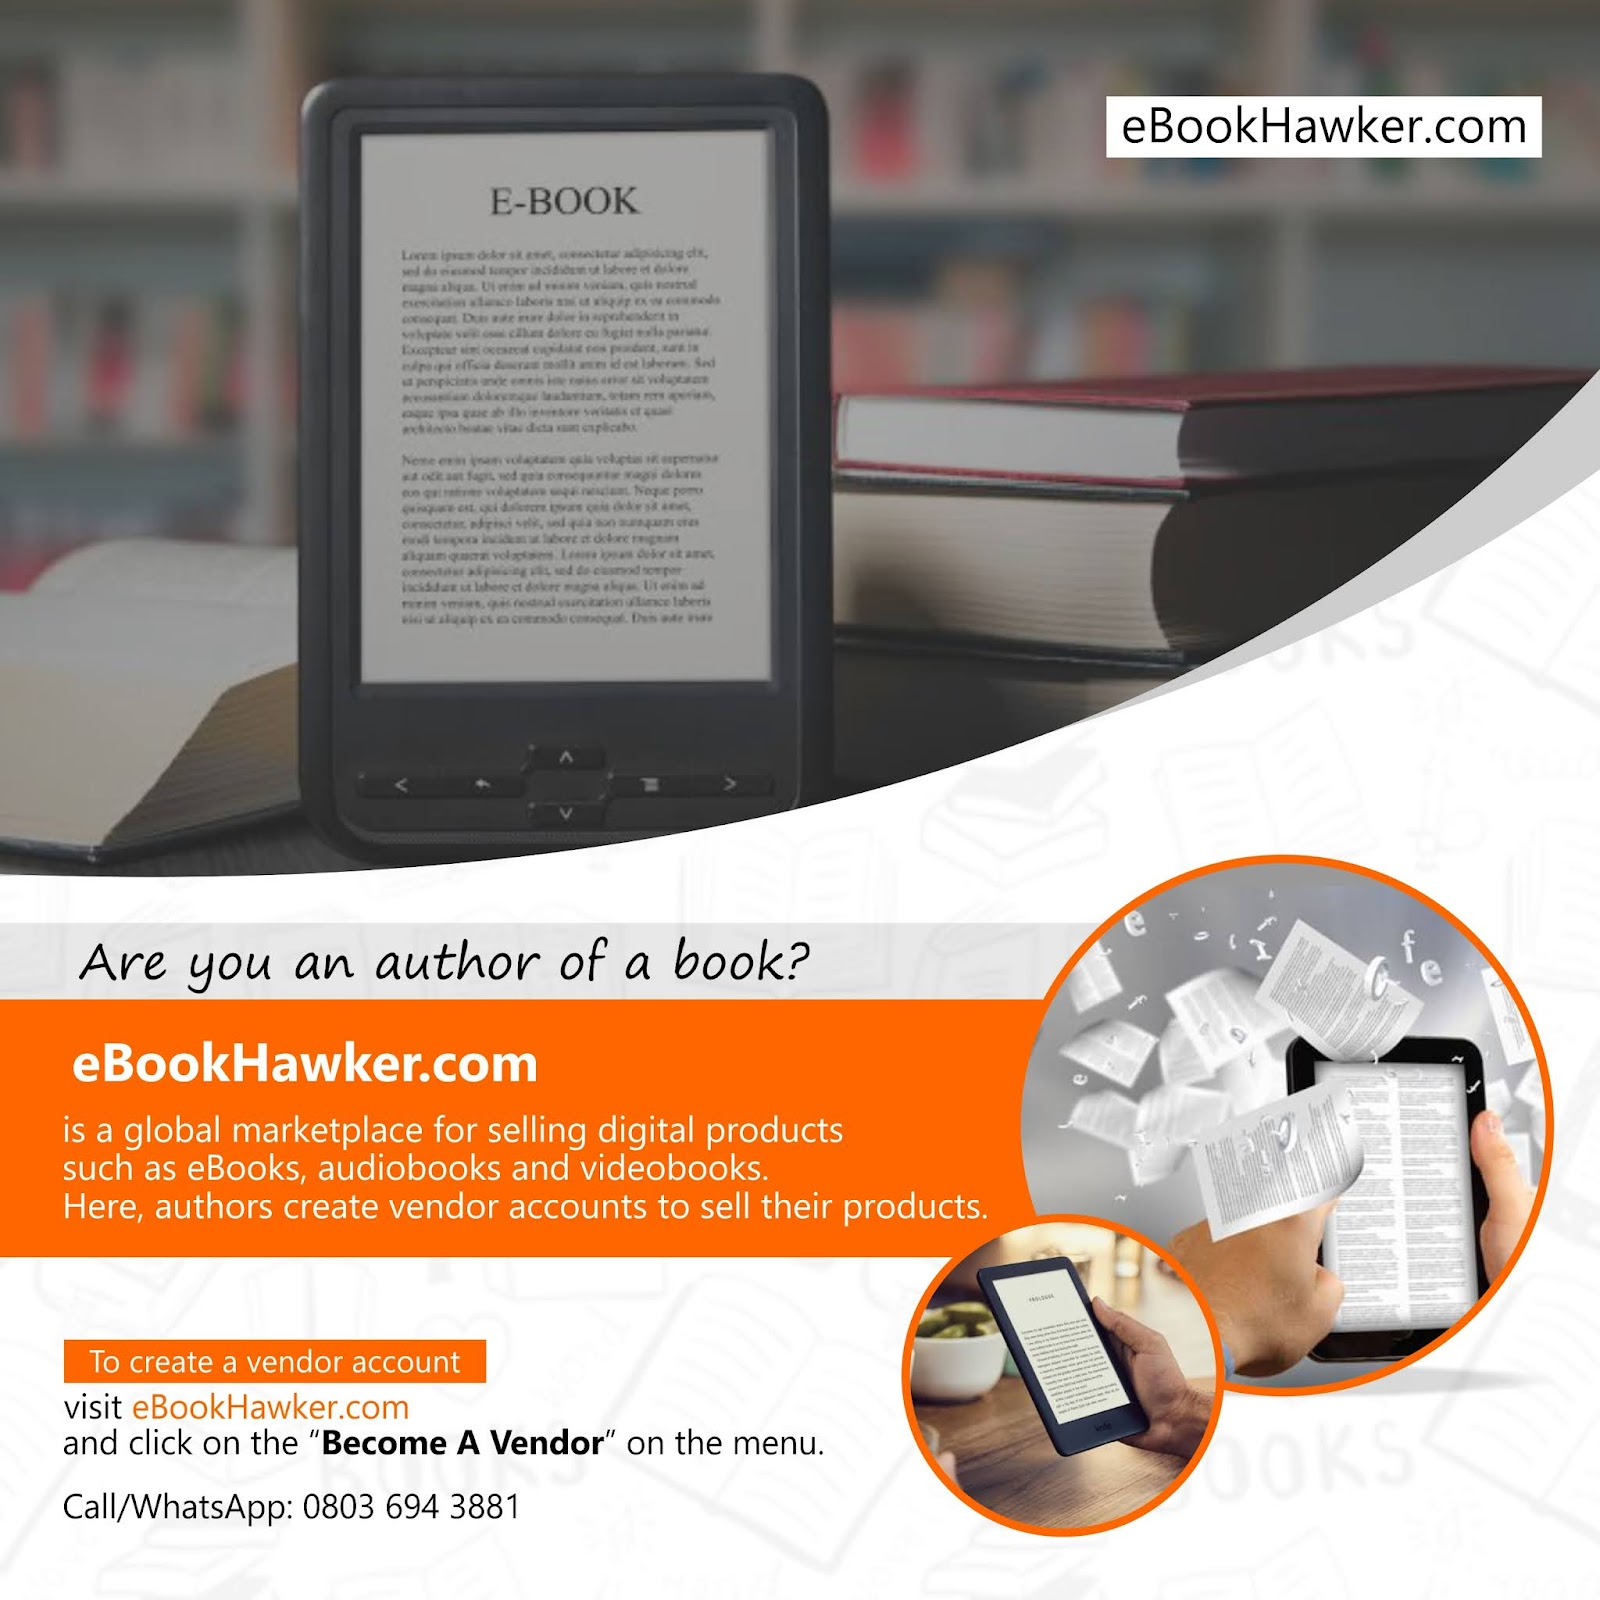 Click On Image To Sale Or By Ebooks